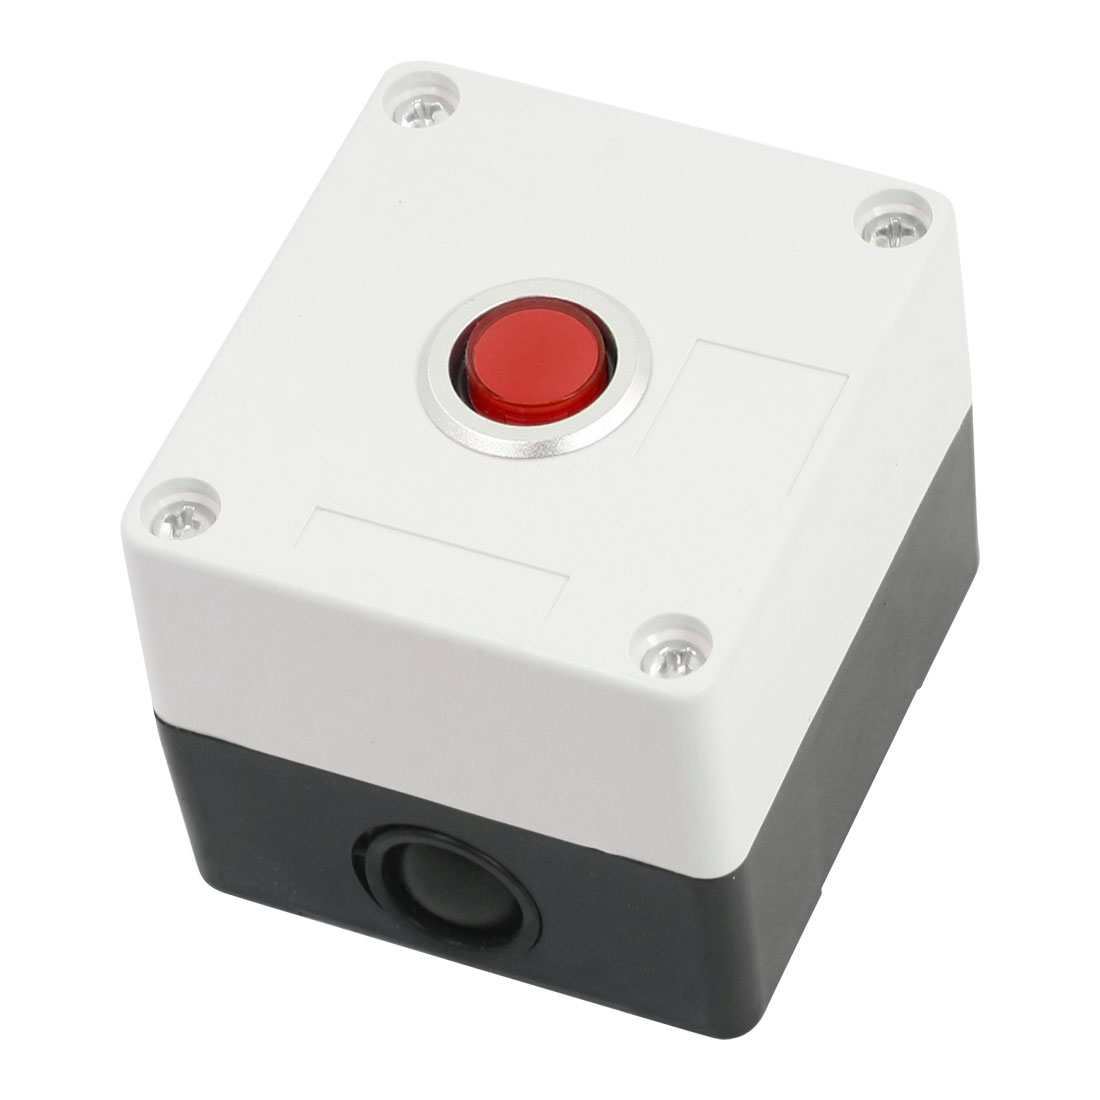 Red 12V Pilot Lamp AC 250 Volt 5A SPDT 5 Terminals Momentary Single Hole Pushbutton Push Button Rectangle Plastic Control Station Box